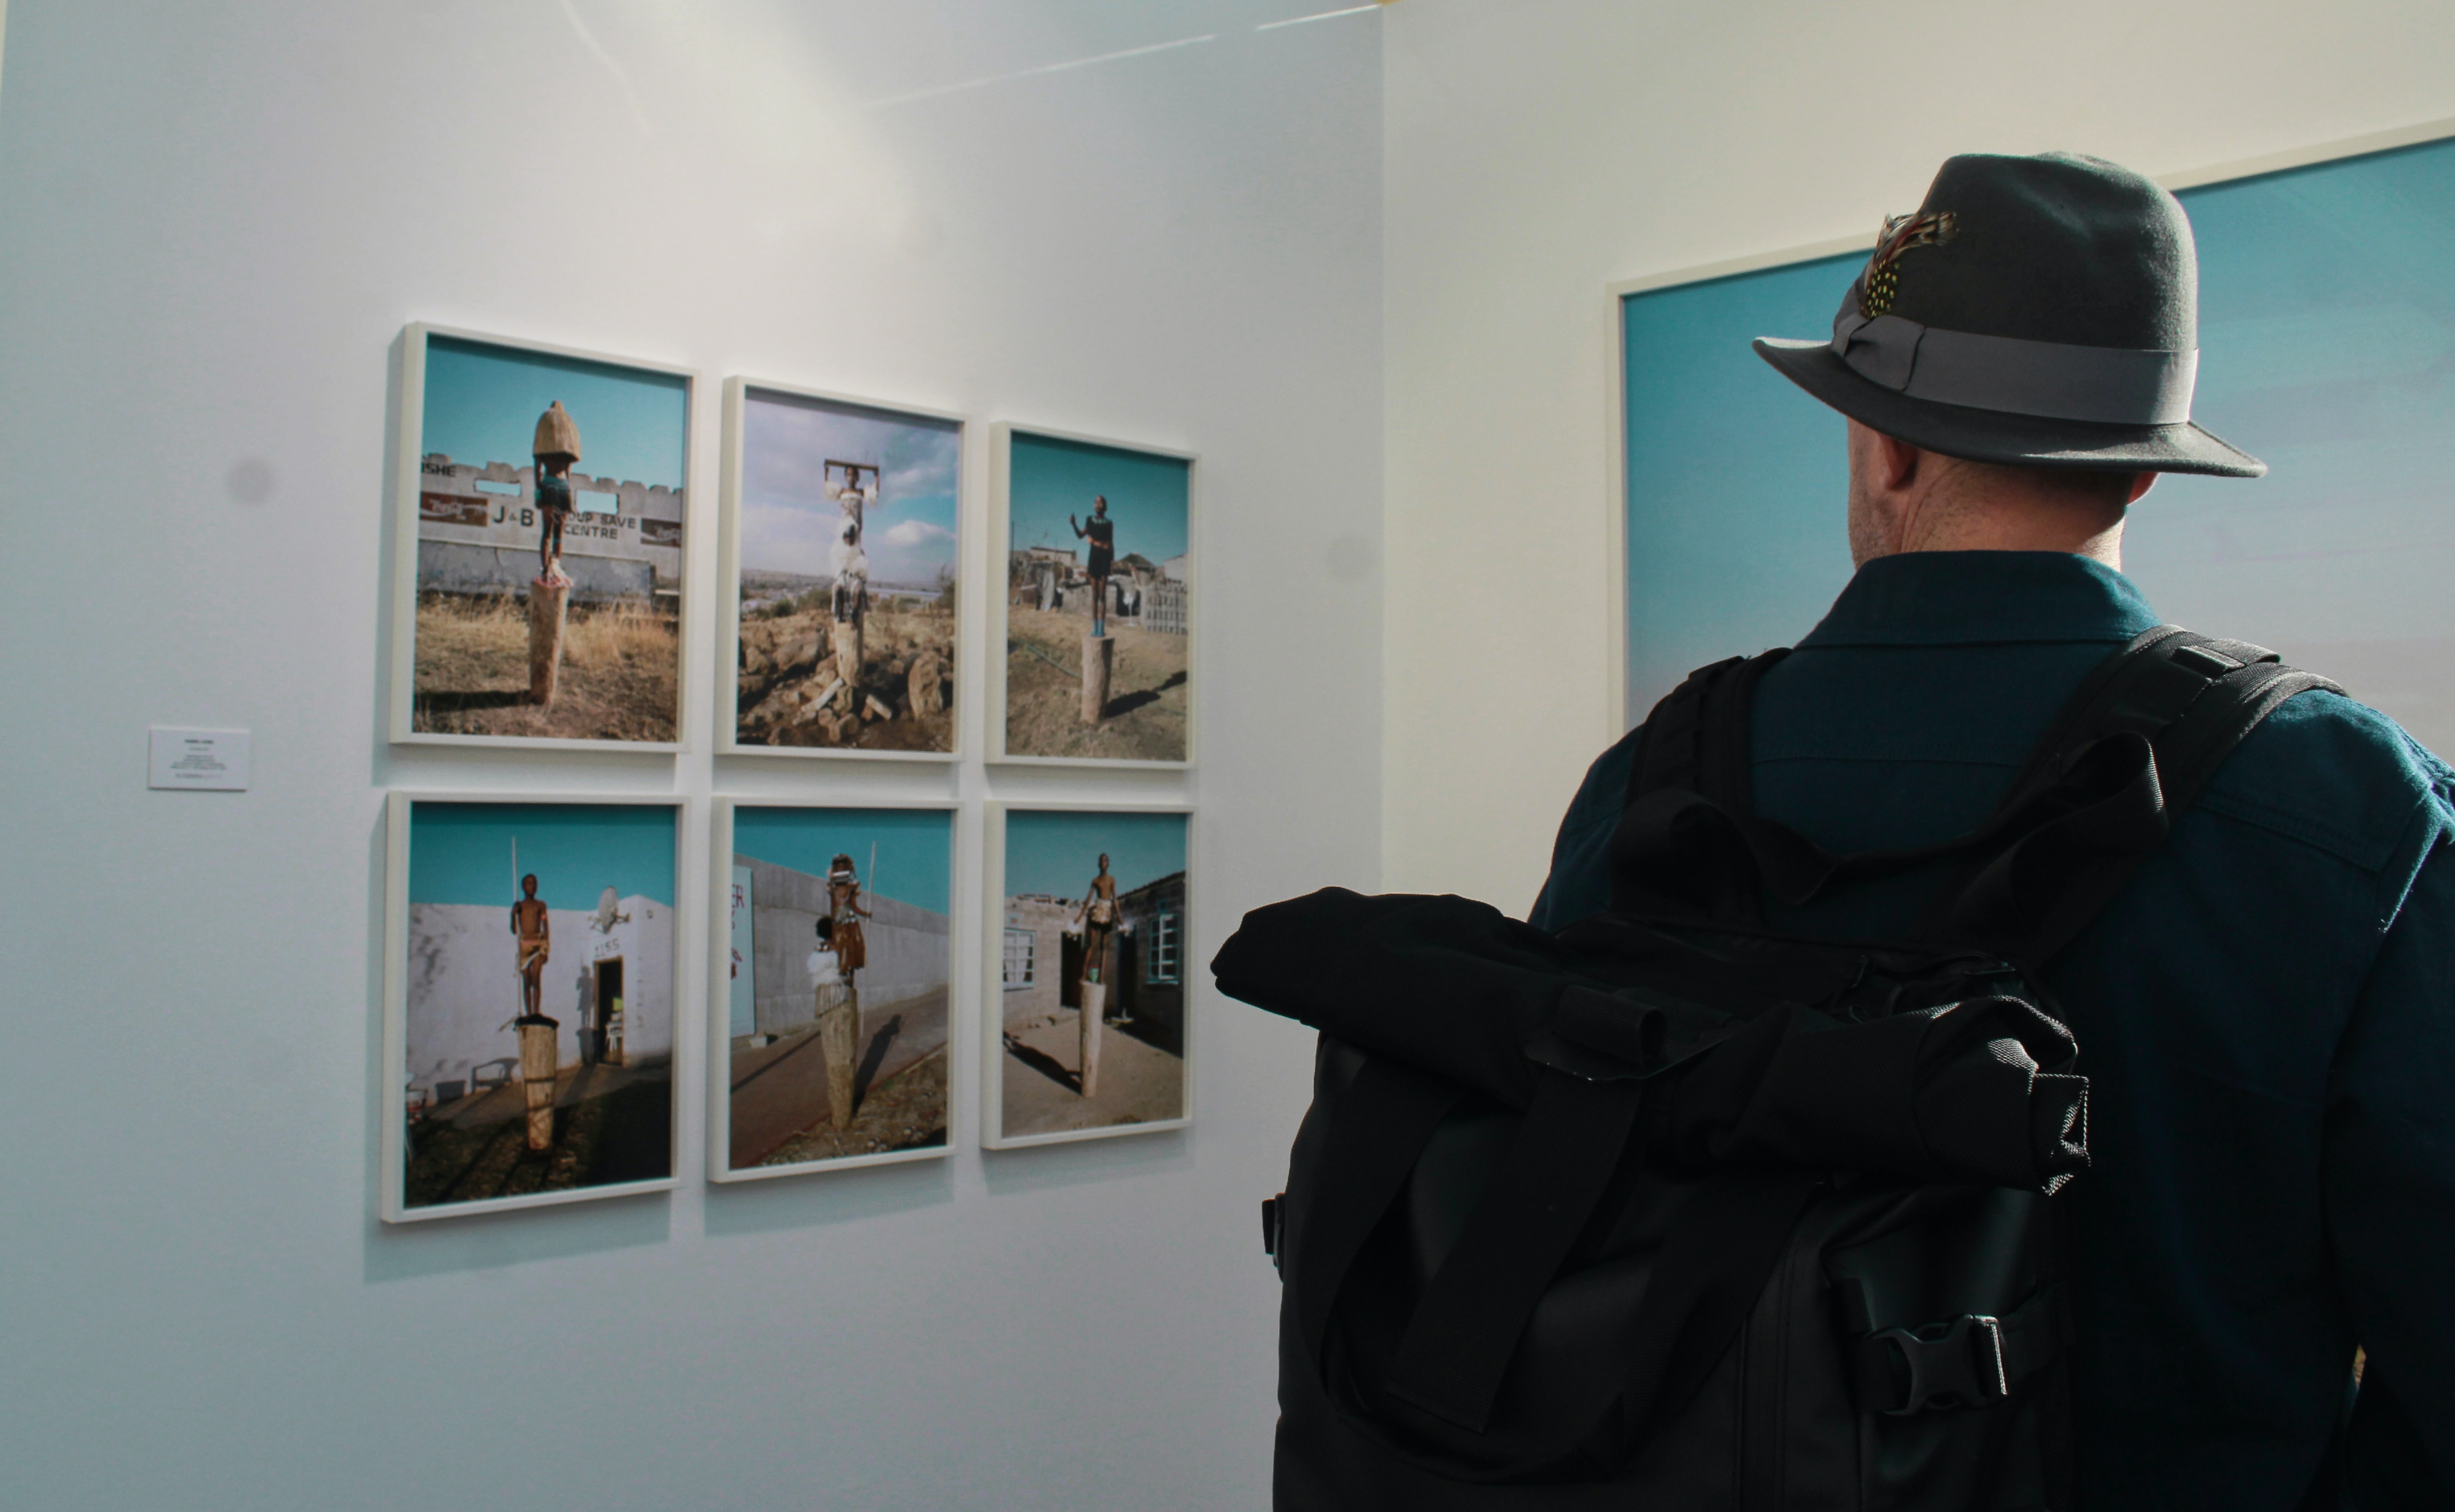 Grand Palais Paris Photo Event,Things To Do In France in November